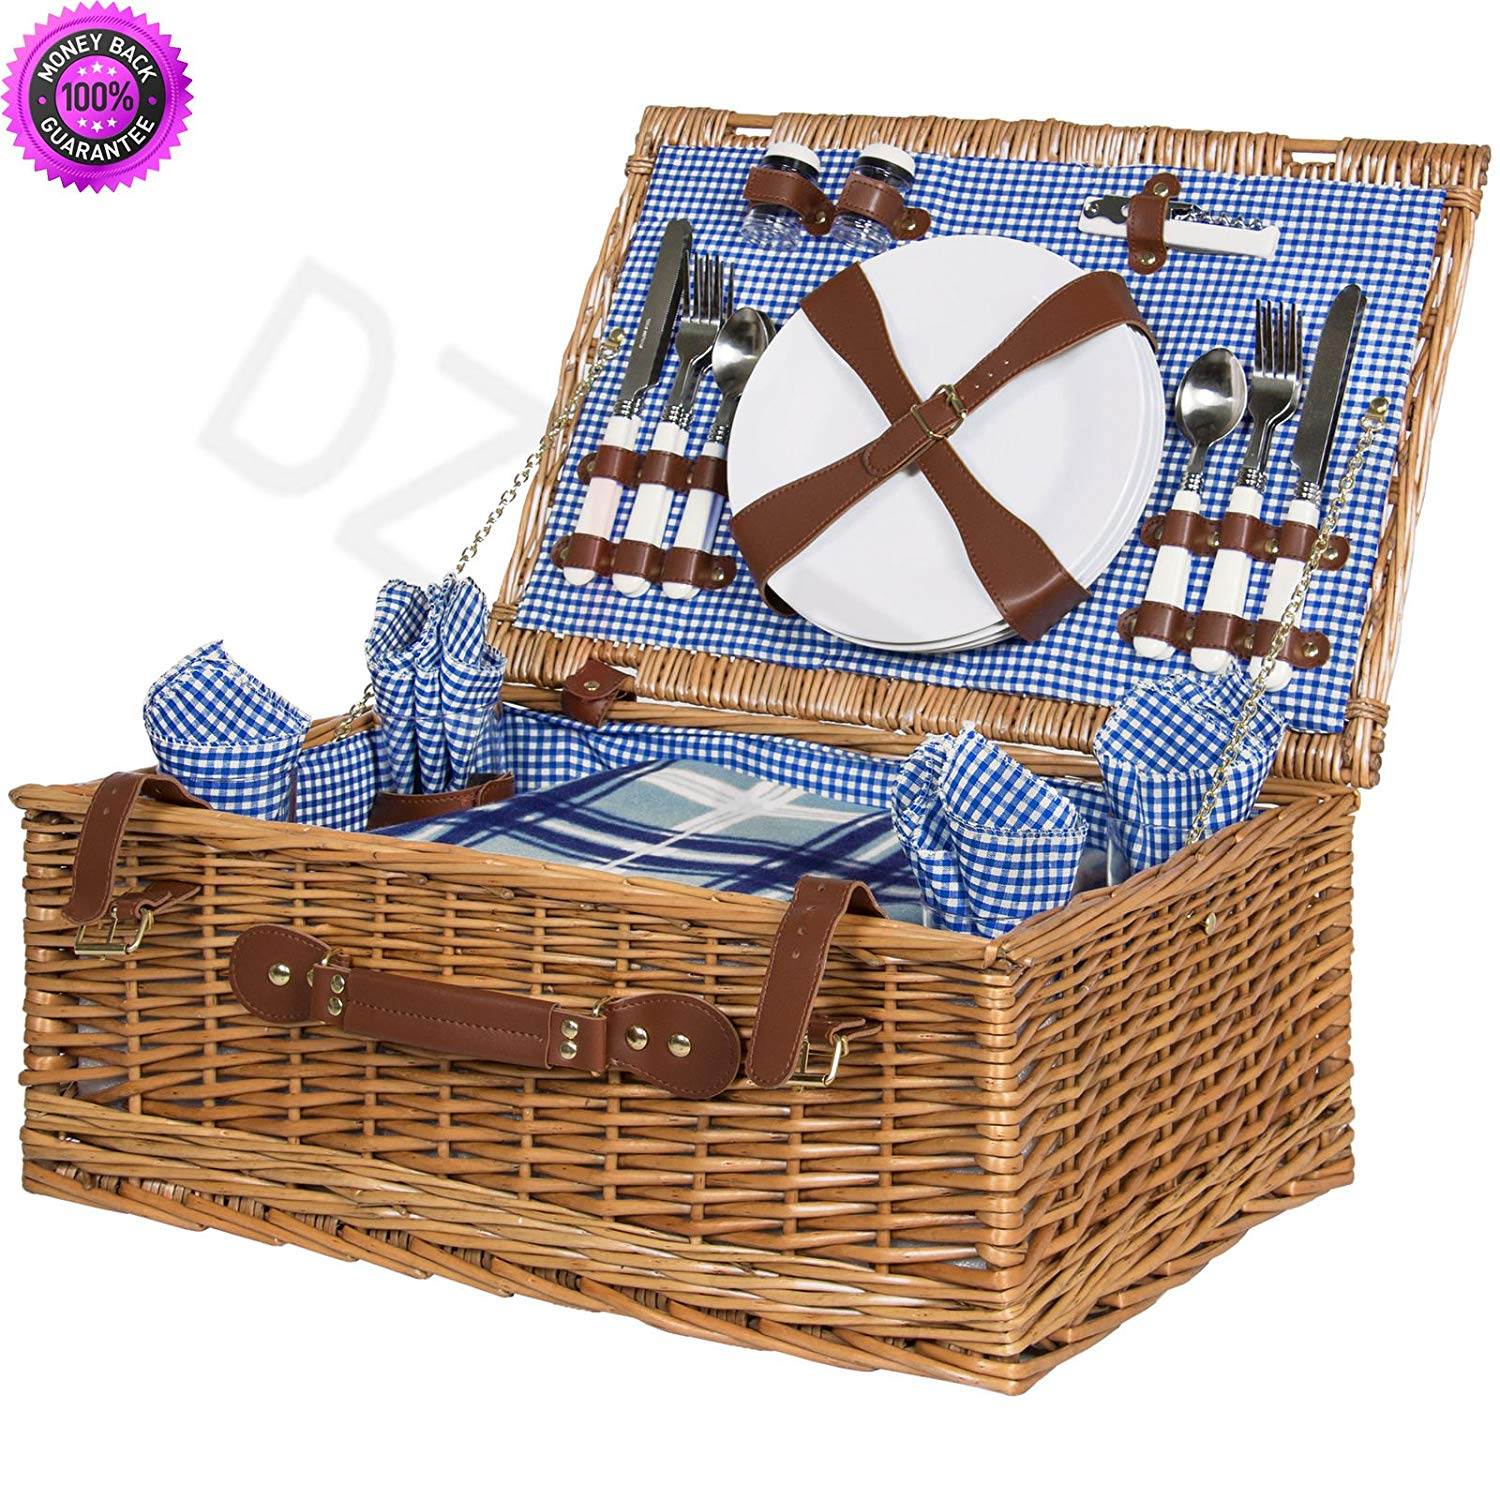 DzVeX 4 Person Wicker Picnic Basket W/Cutlery, Plates, Glasses, Tableware & Blanket And picnic basket set best picnic backpack best picnic basket picnic basket bed bath and beyond cheap picnic